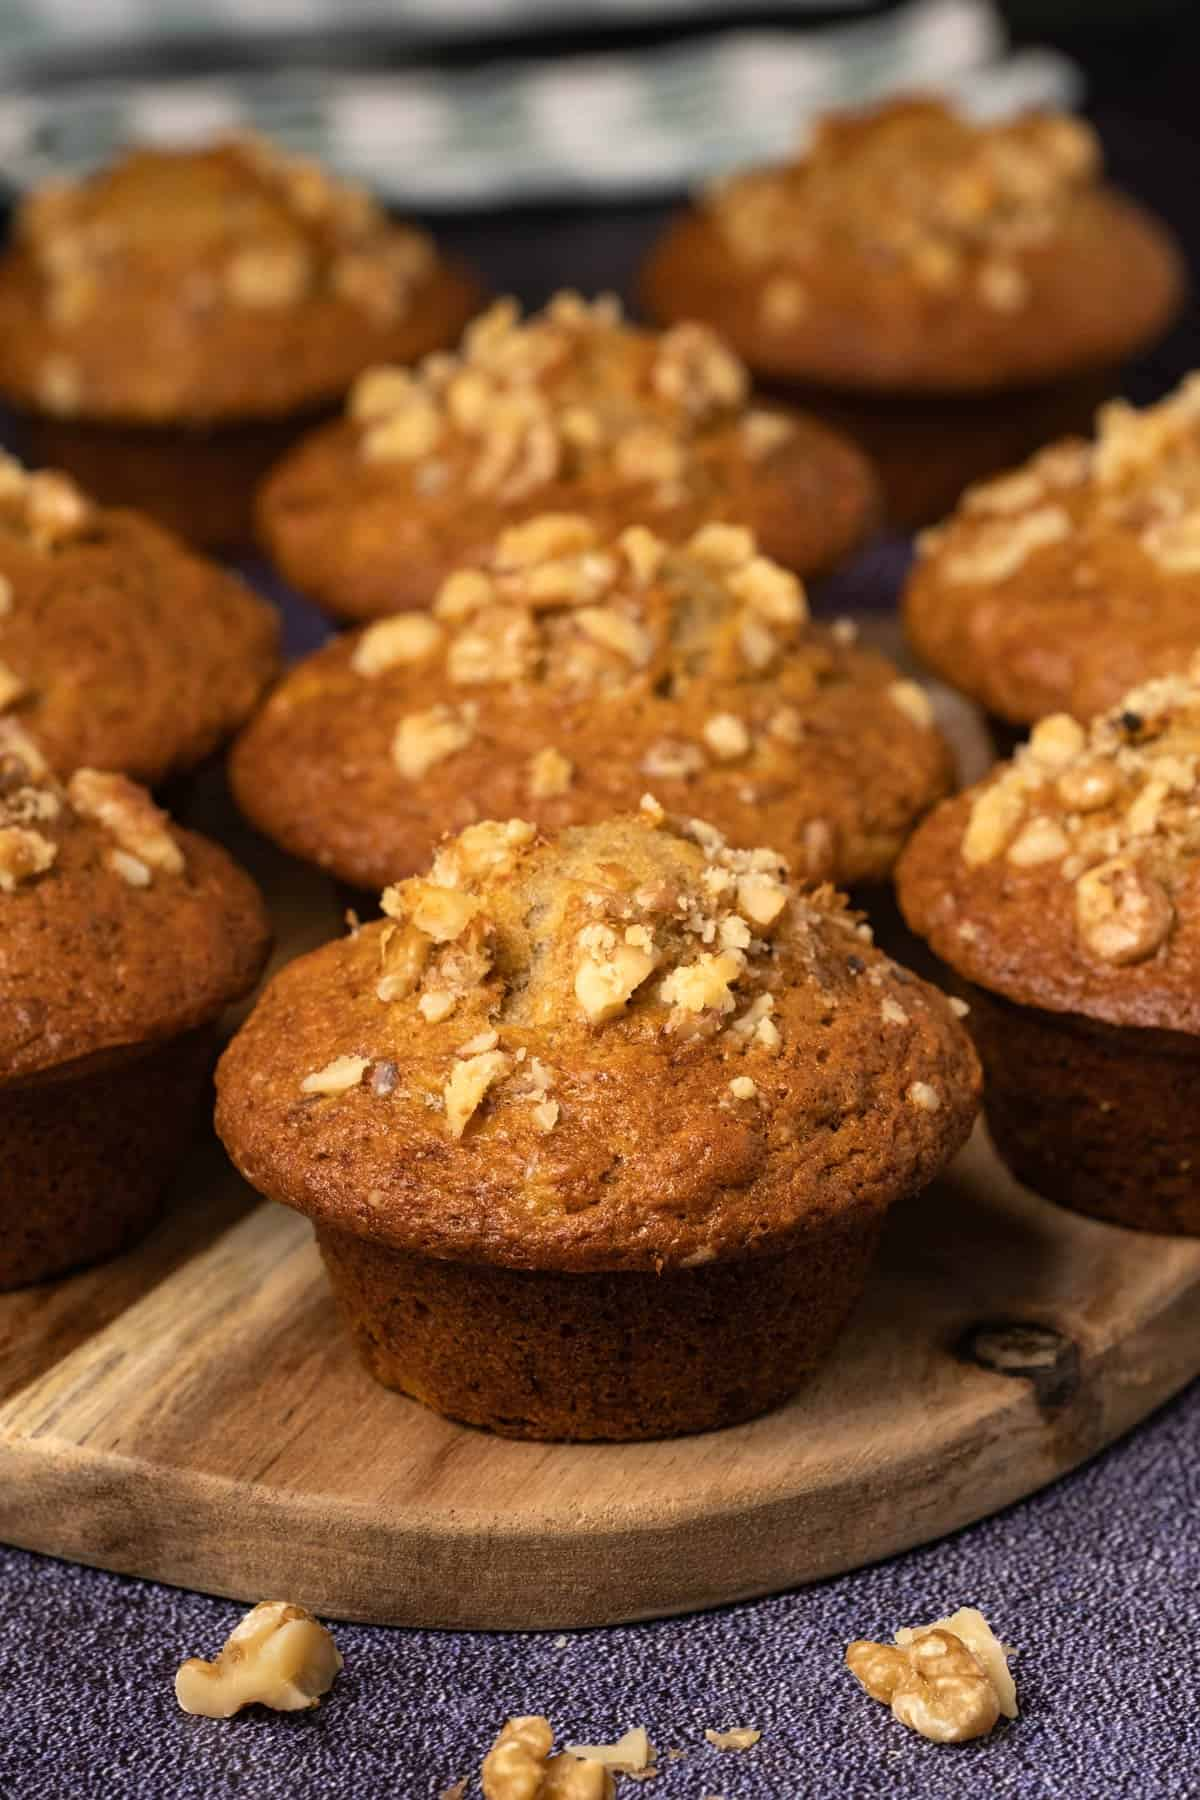 Banana muffins on a wooden board.